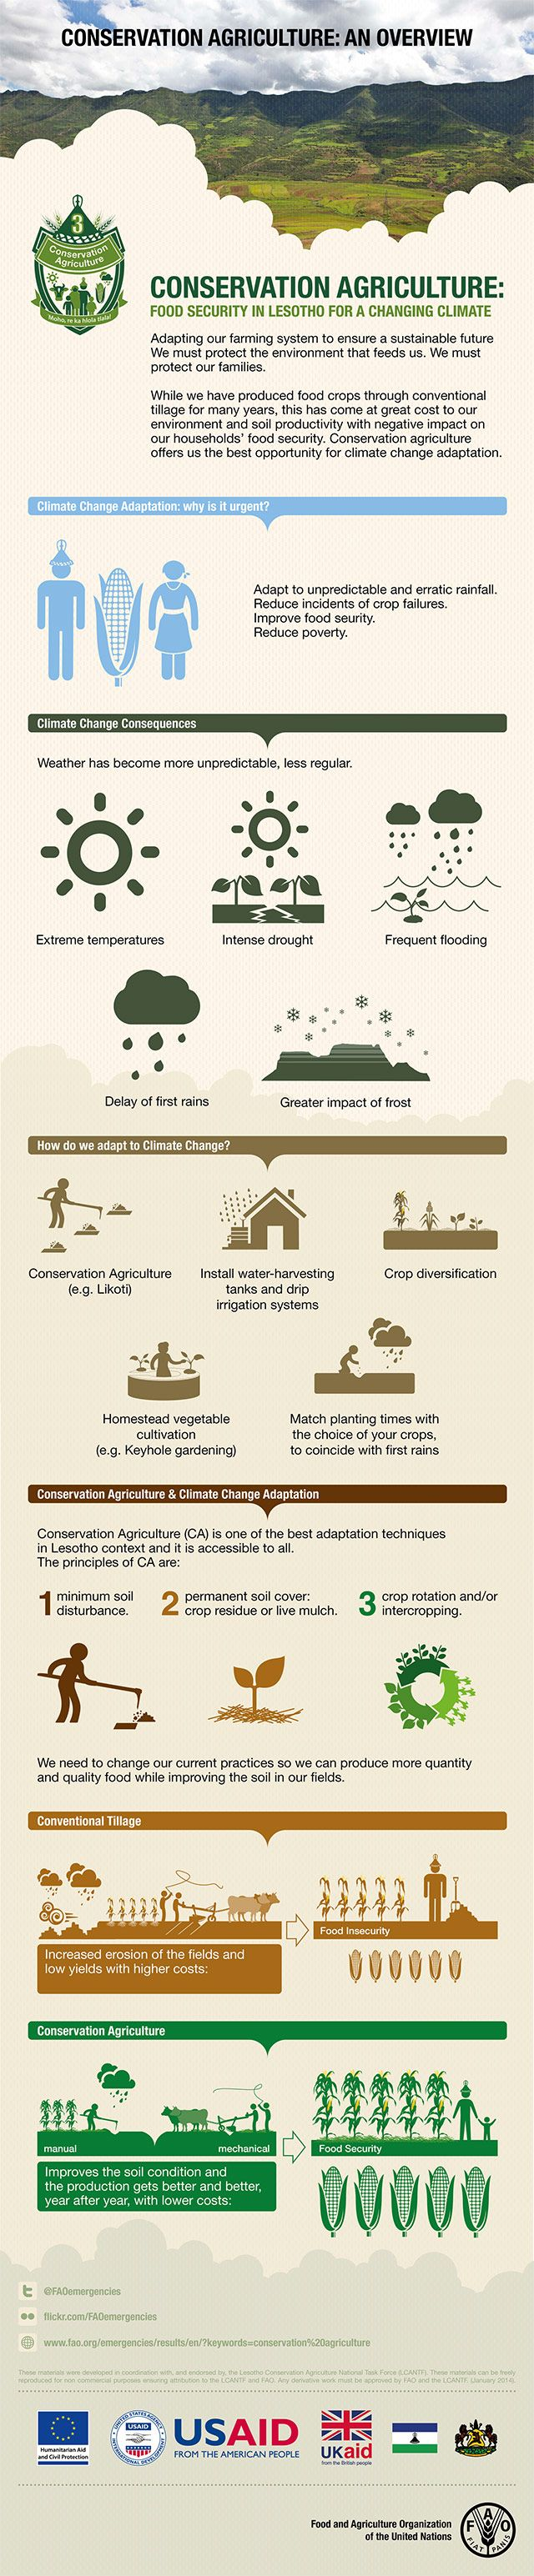 Conservation agriculture: an overview - We must protect the environment that feeds us. We must protect our families. While we have produced food crops through conventional tillage for many years, this has come at great cost to our environment and soil productivity with negative impact on our households' food security. Conservation agriculture offers us the best opportunity for climate change adaptation.